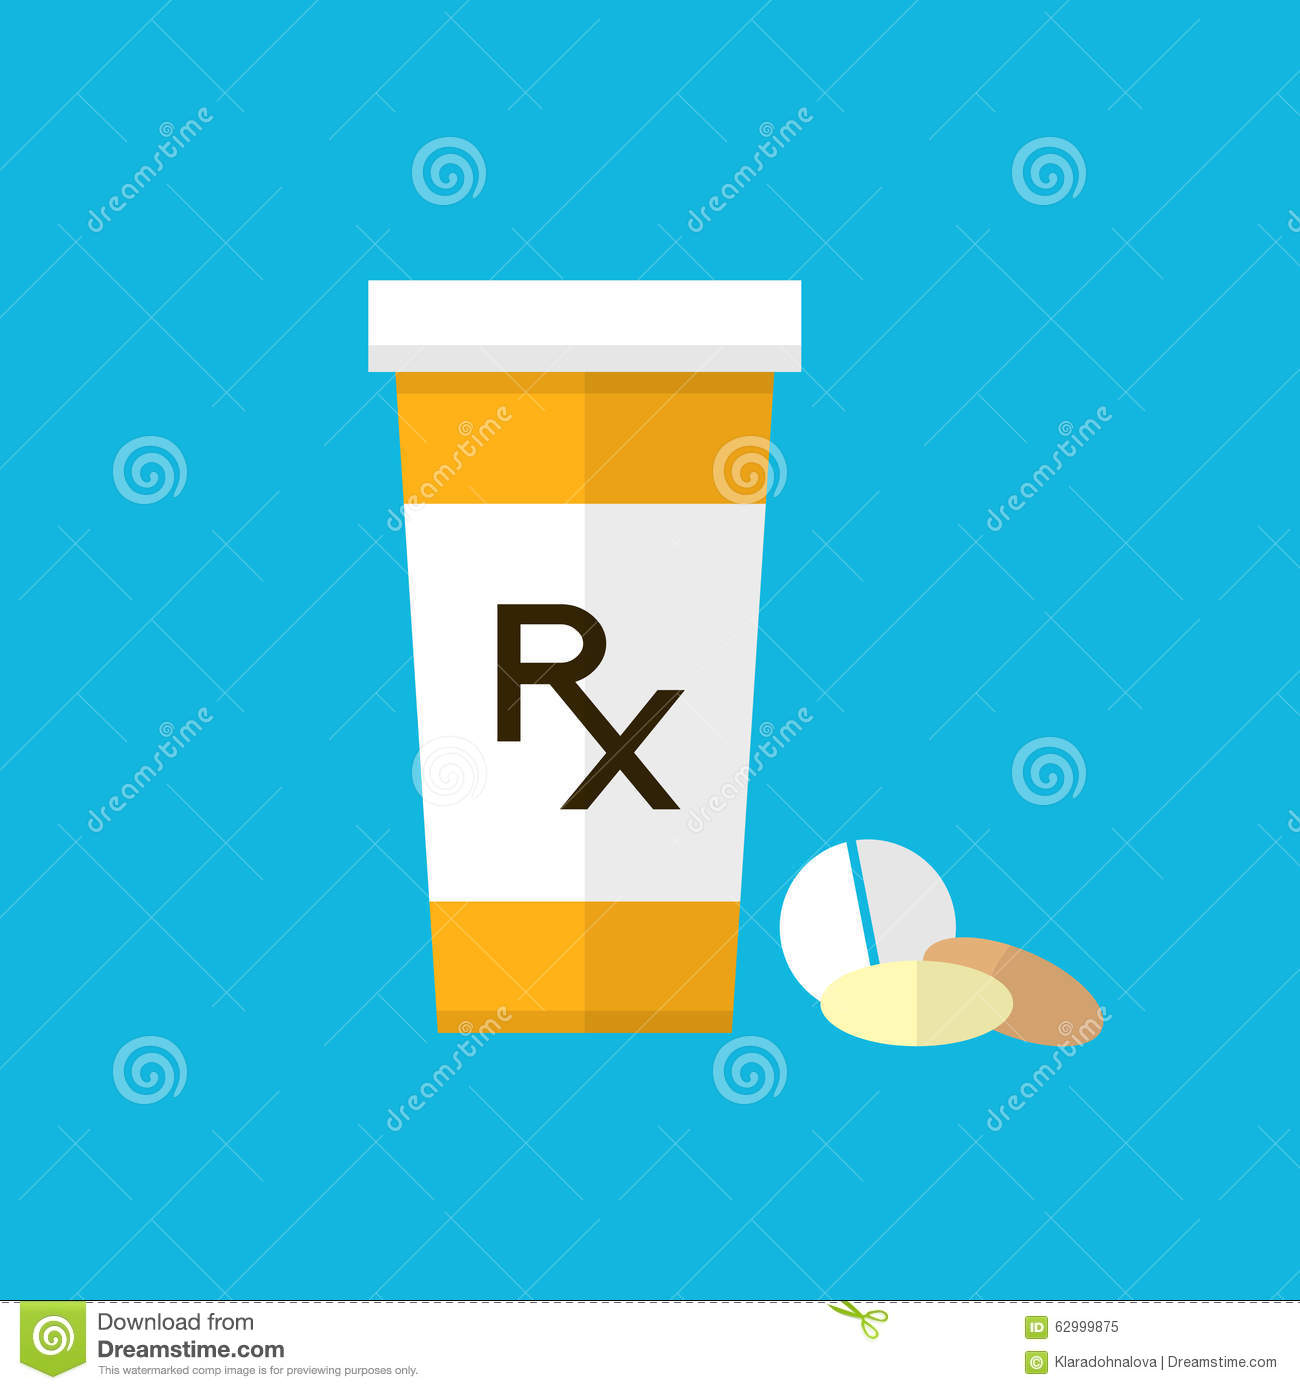 Rx Pharmacy Symbol Stock Photo Image Of Blood Detail 4599996